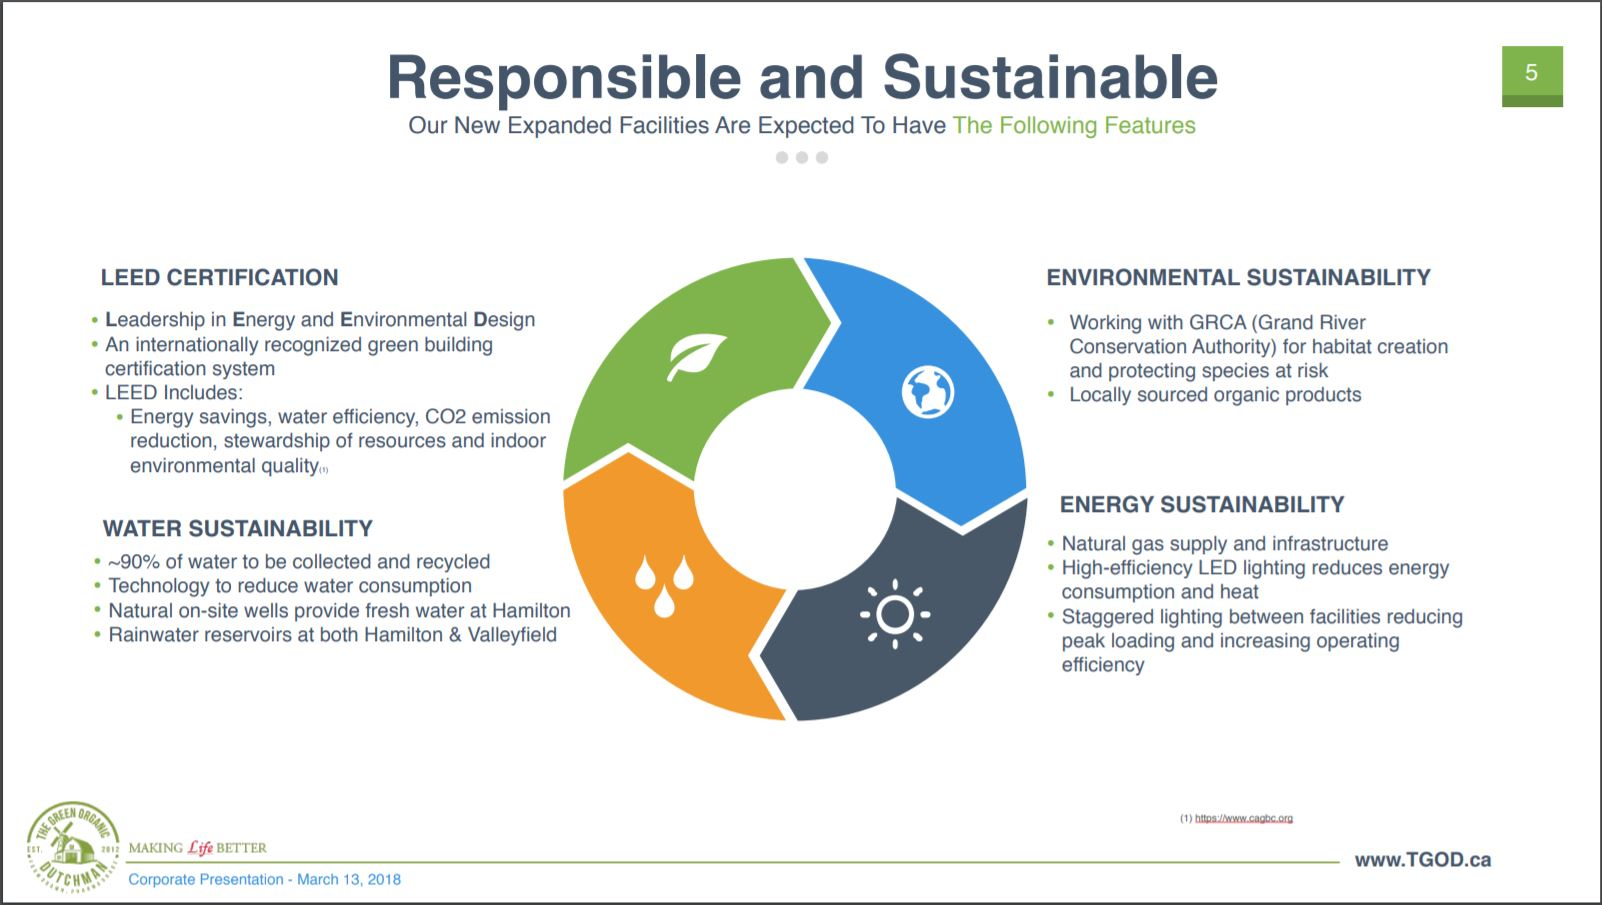 Page 5 of the TGOD investor presentation outlining environmental stewardship.